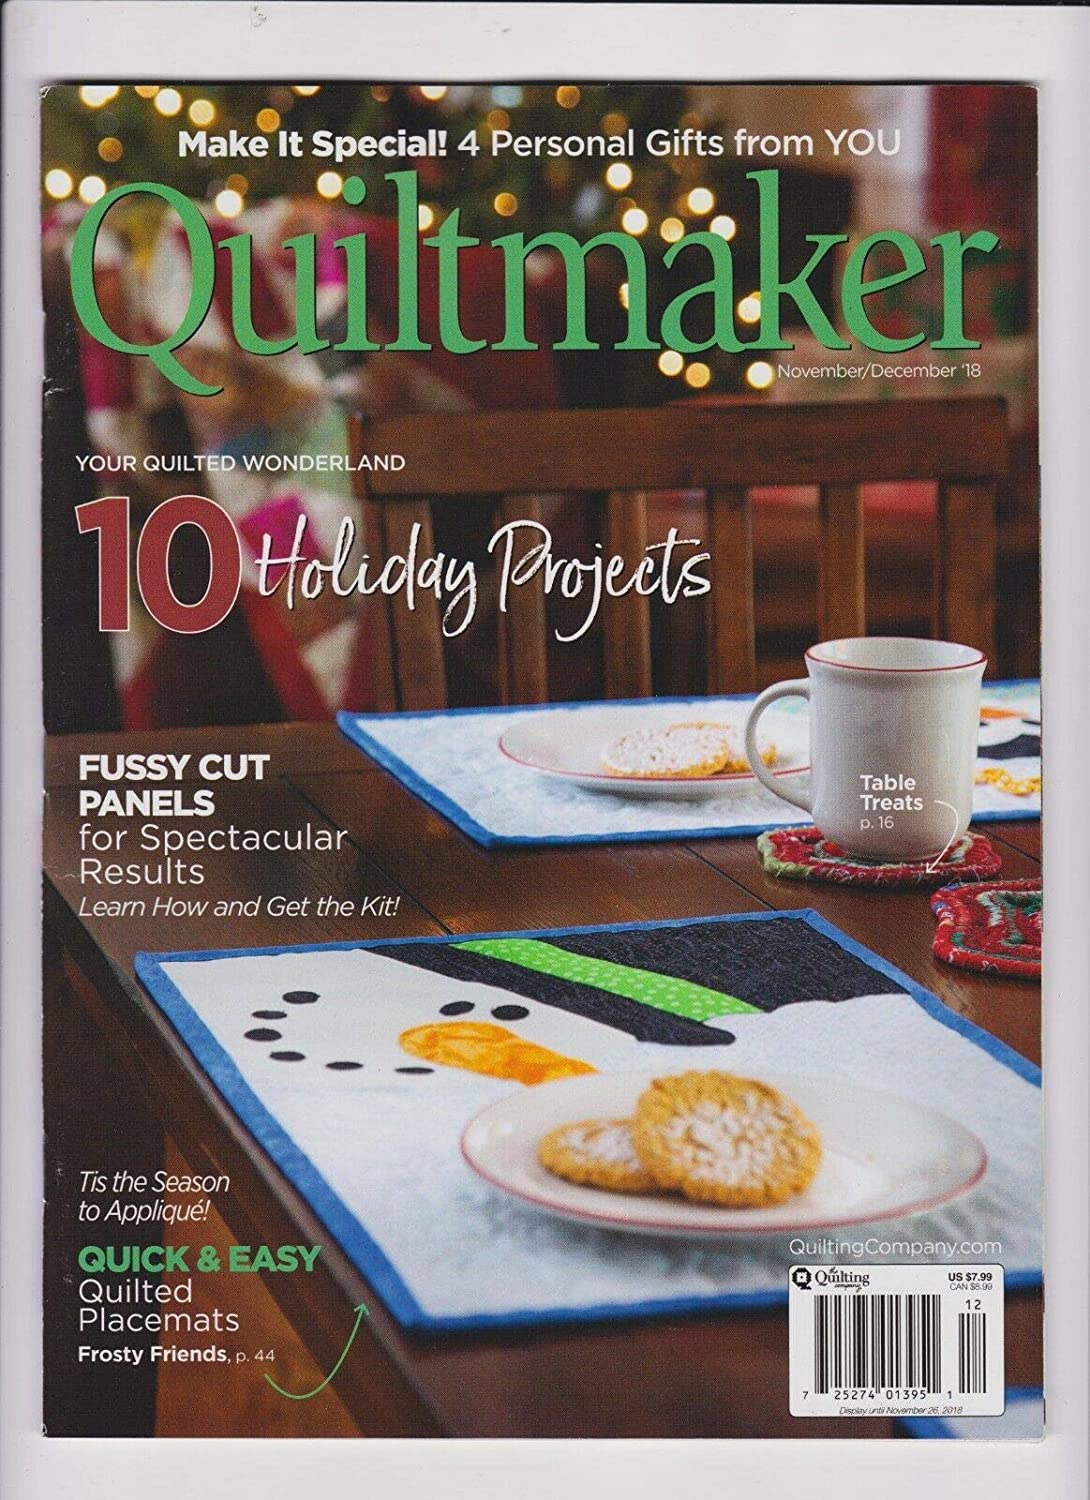 10 HOLIDAY PROJECTS. QUILTMAKER MAGAZINE NOV//DEC 2018